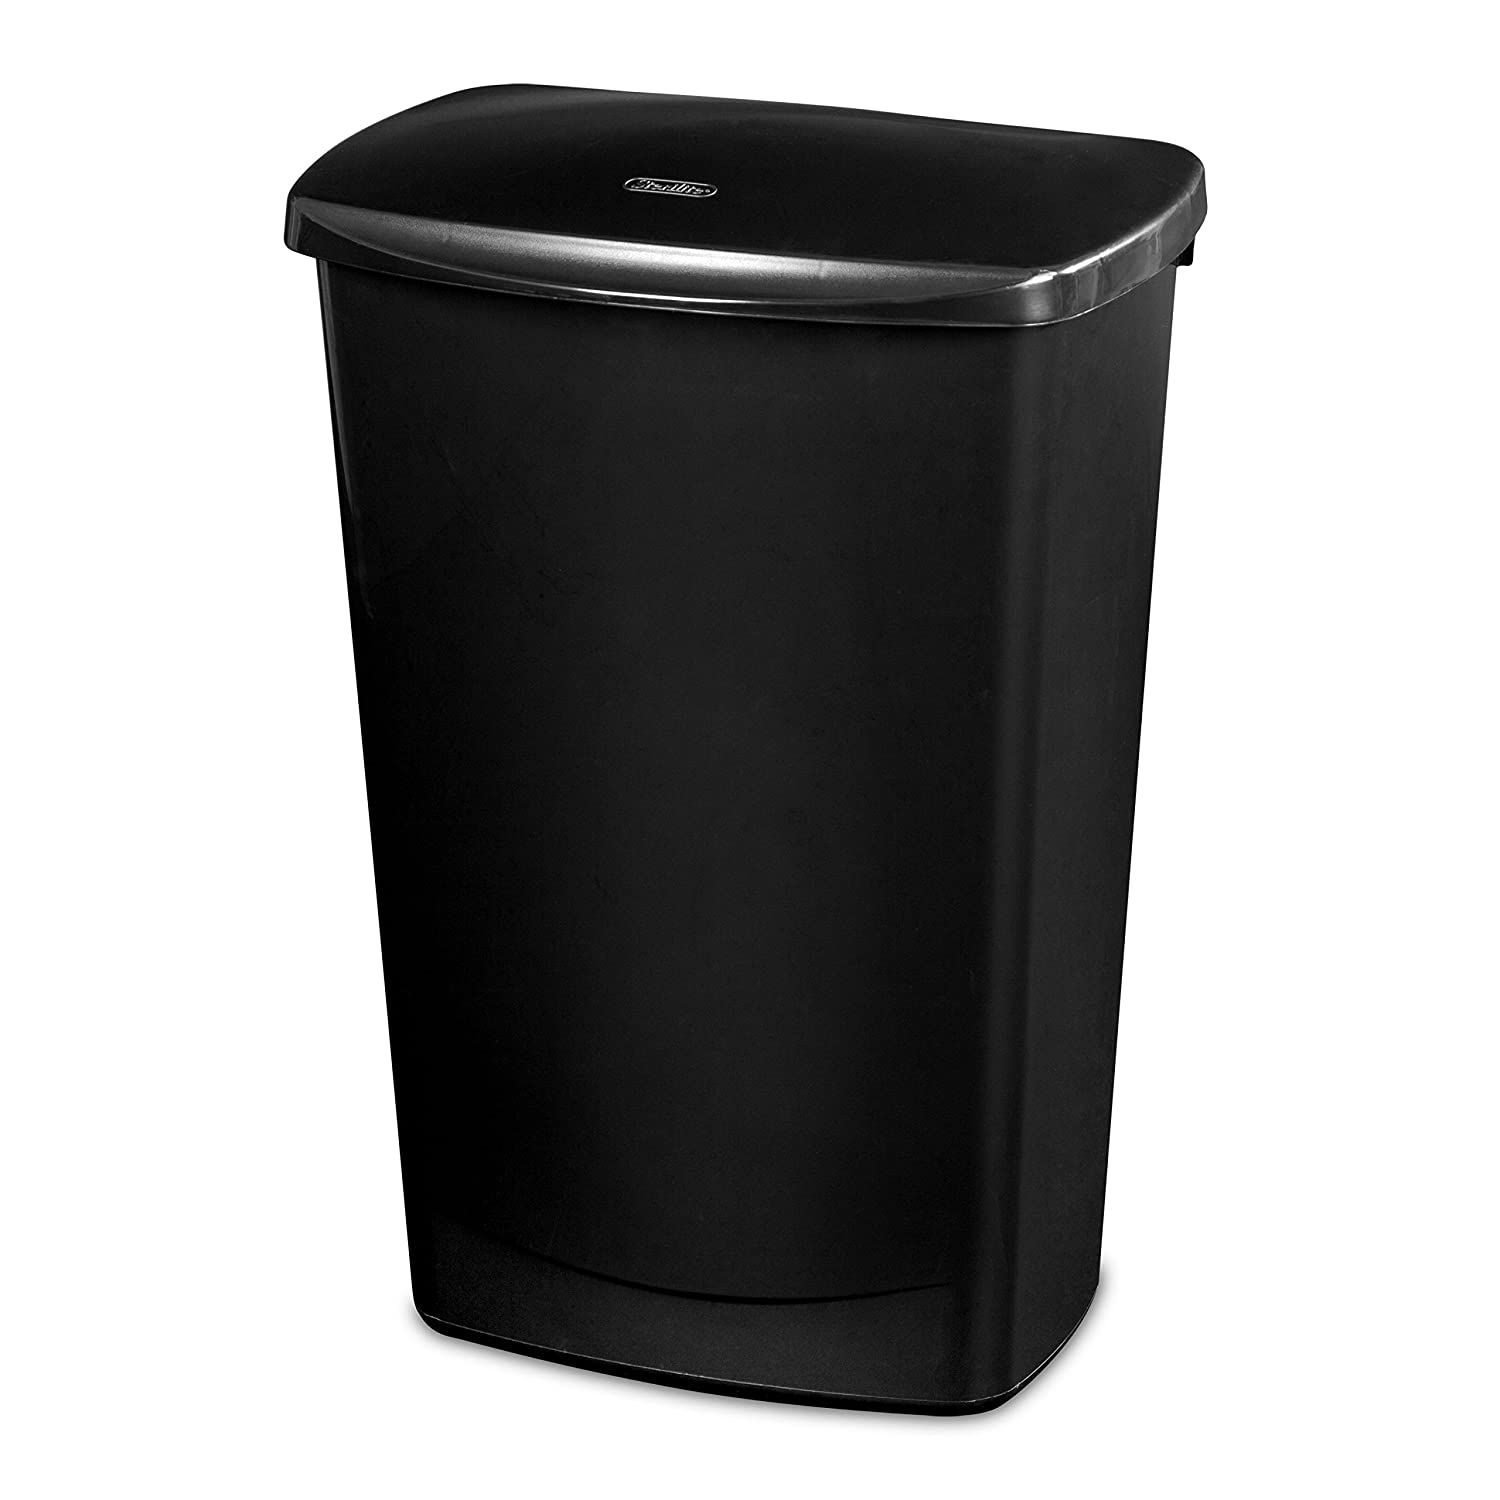 12 16 gallon garbage bags clear 1 mil 24x31 250 bags plasticmill. Black Bedroom Furniture Sets. Home Design Ideas